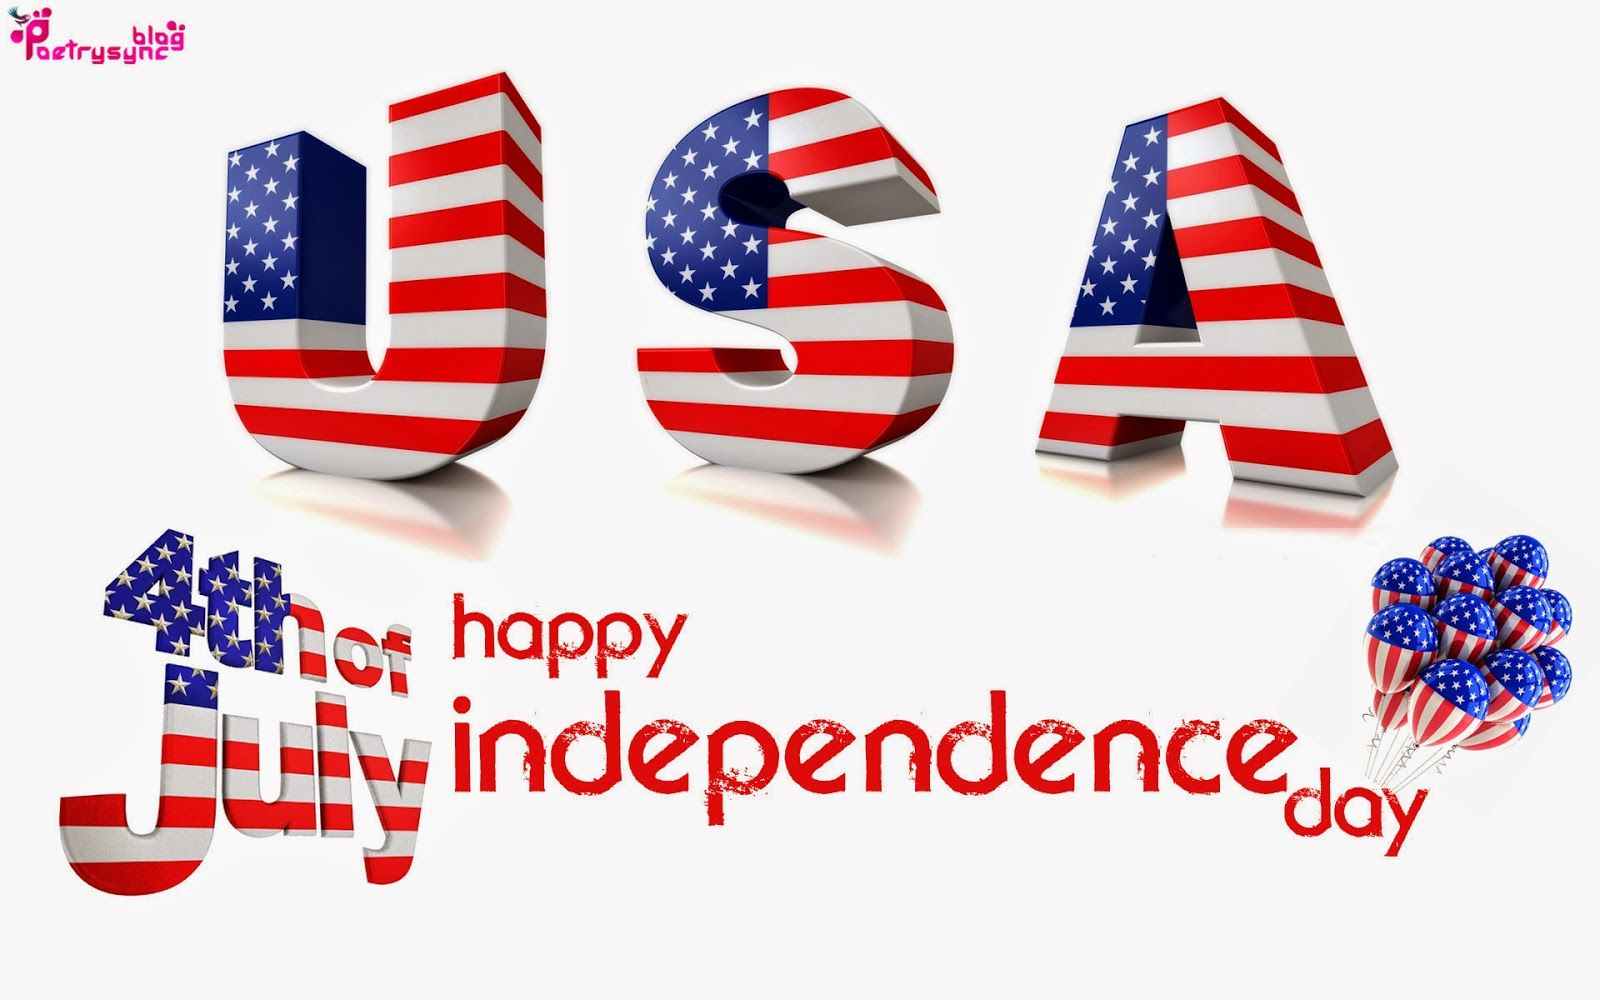 Poetry Happy 4th Of July Independence Day Wishes And Greetings